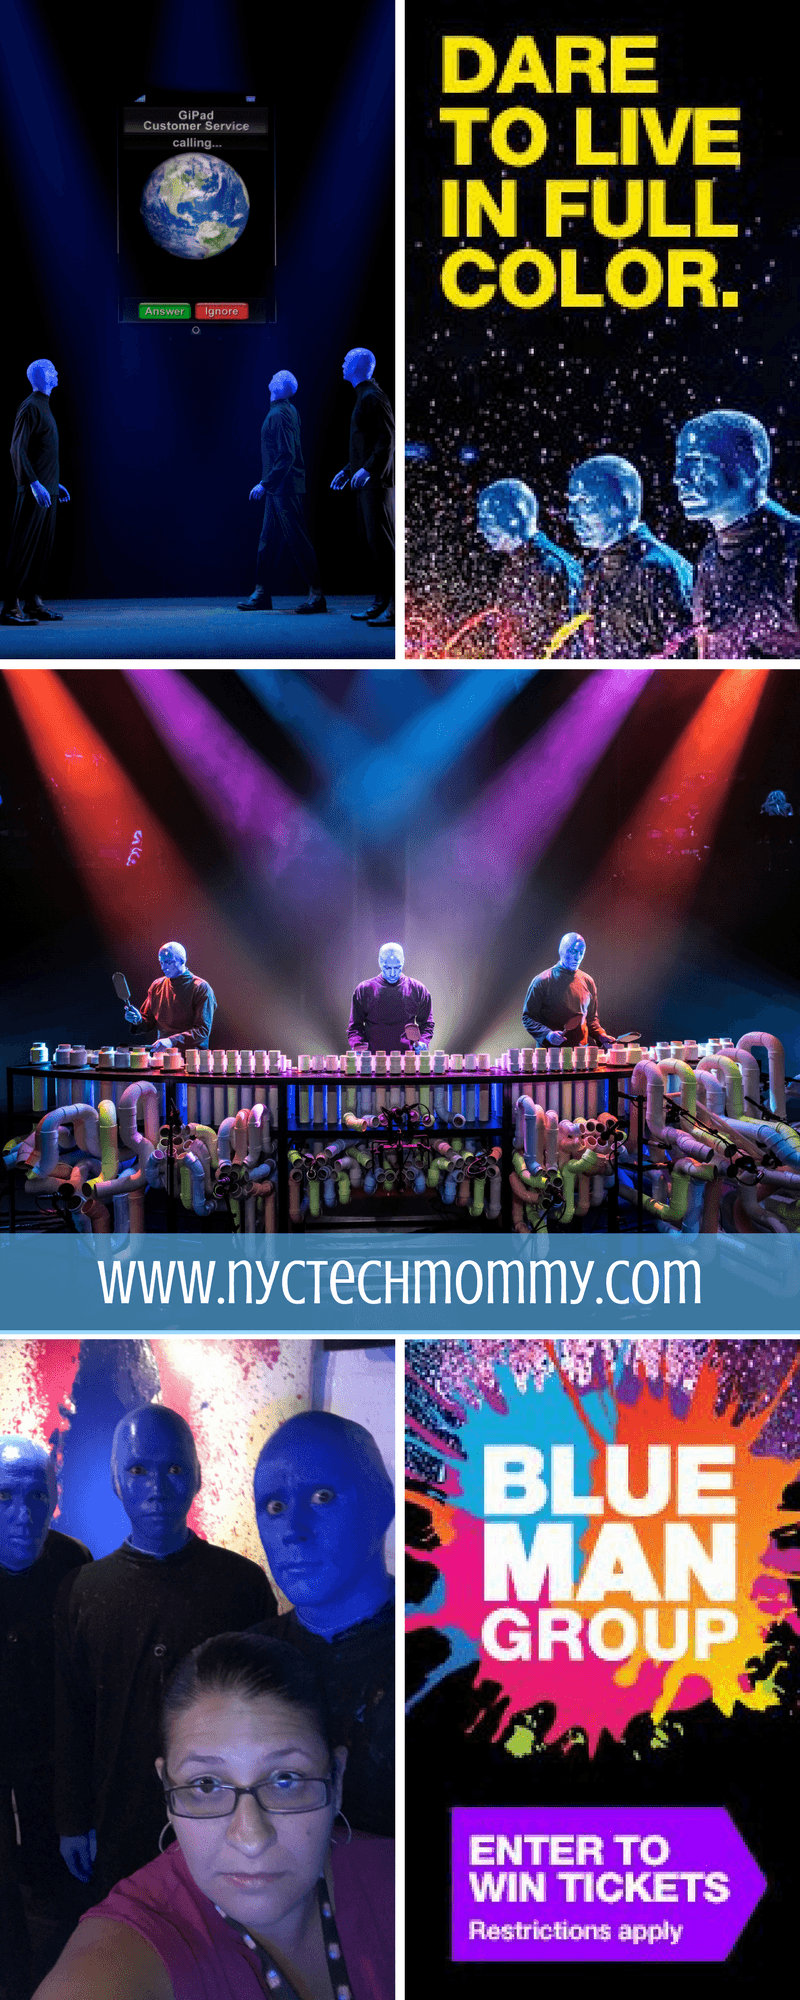 Blue Man Group Ticket Giveaway - Family Four (4) Pack of tickets -- This wildly popular show delivers a joyful, multi-sensory experience that the entire family will enjoy!